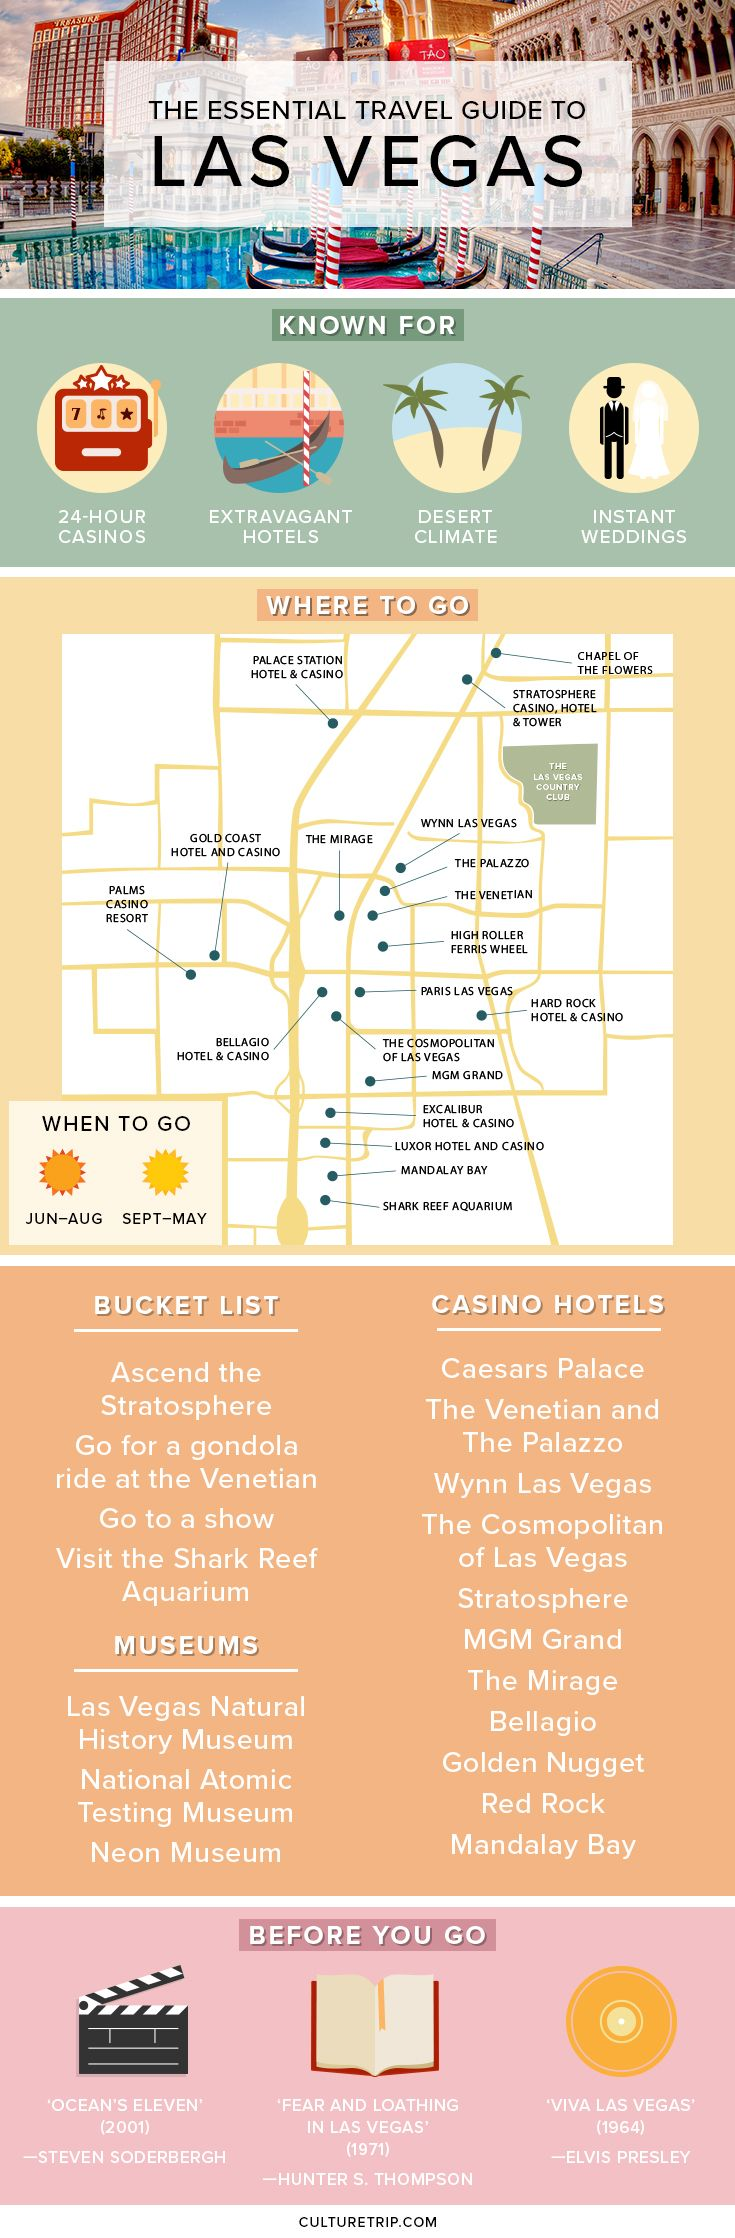 The Essential Travel Guide to Las Vegas (Infographic) Pinterest: @theculturetrip